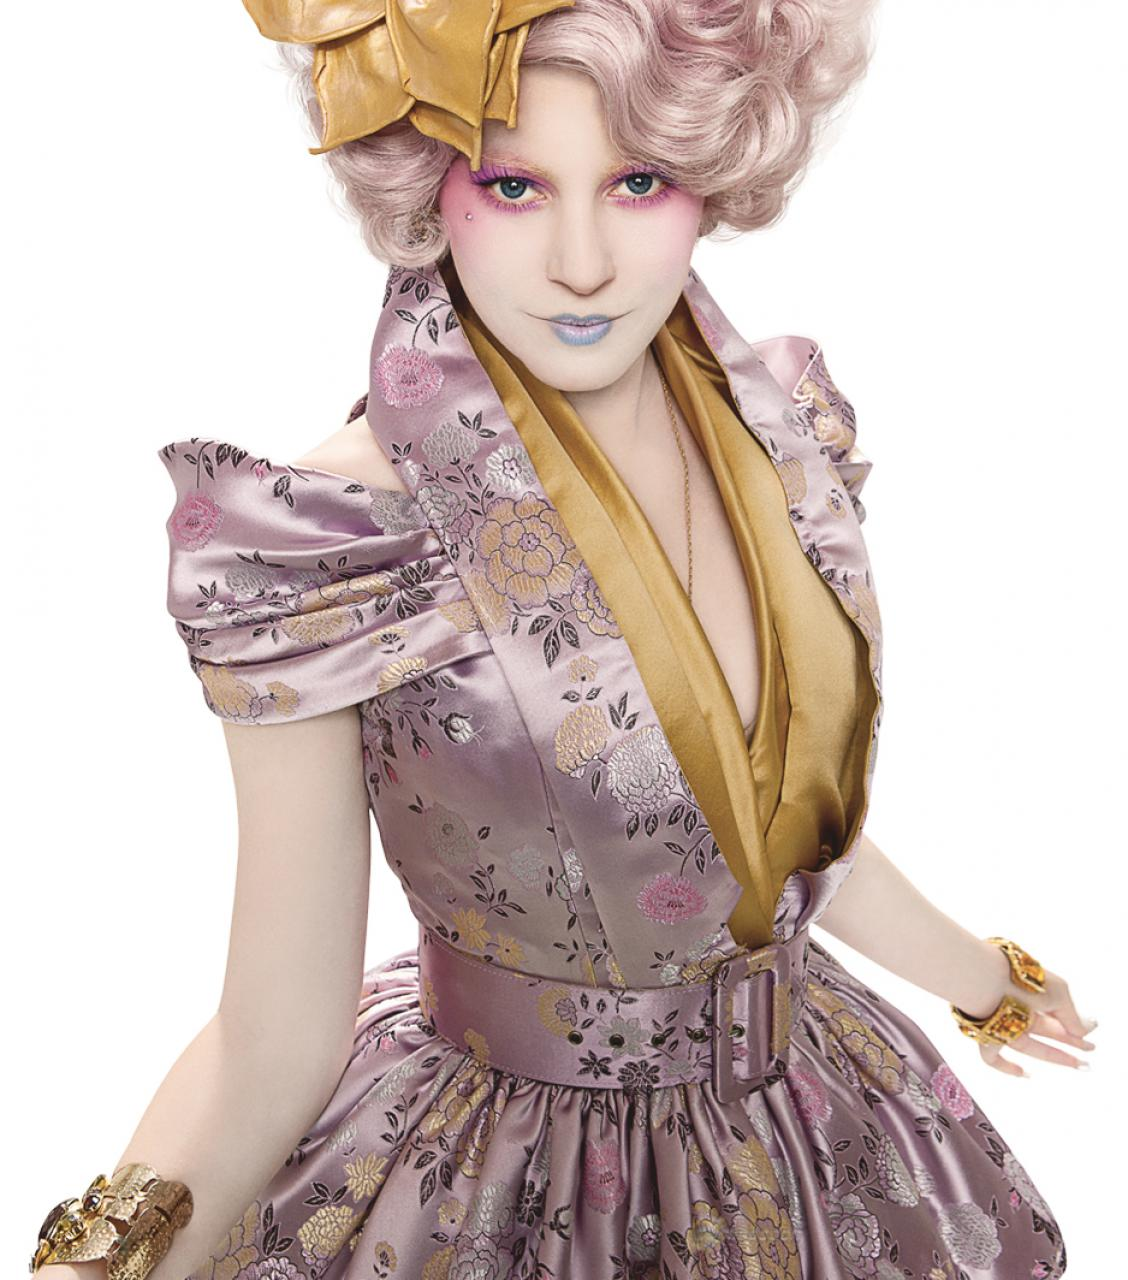 http://4.bp.blogspot.com/-zjrd_oXw4eE/Tw8ghMT-T0I/AAAAAAAABHY/Bo8RIxP8tyQ/s1600/Elizabeth-Banks-as-Effie-Trinket-The-Hunger-Games.jpg